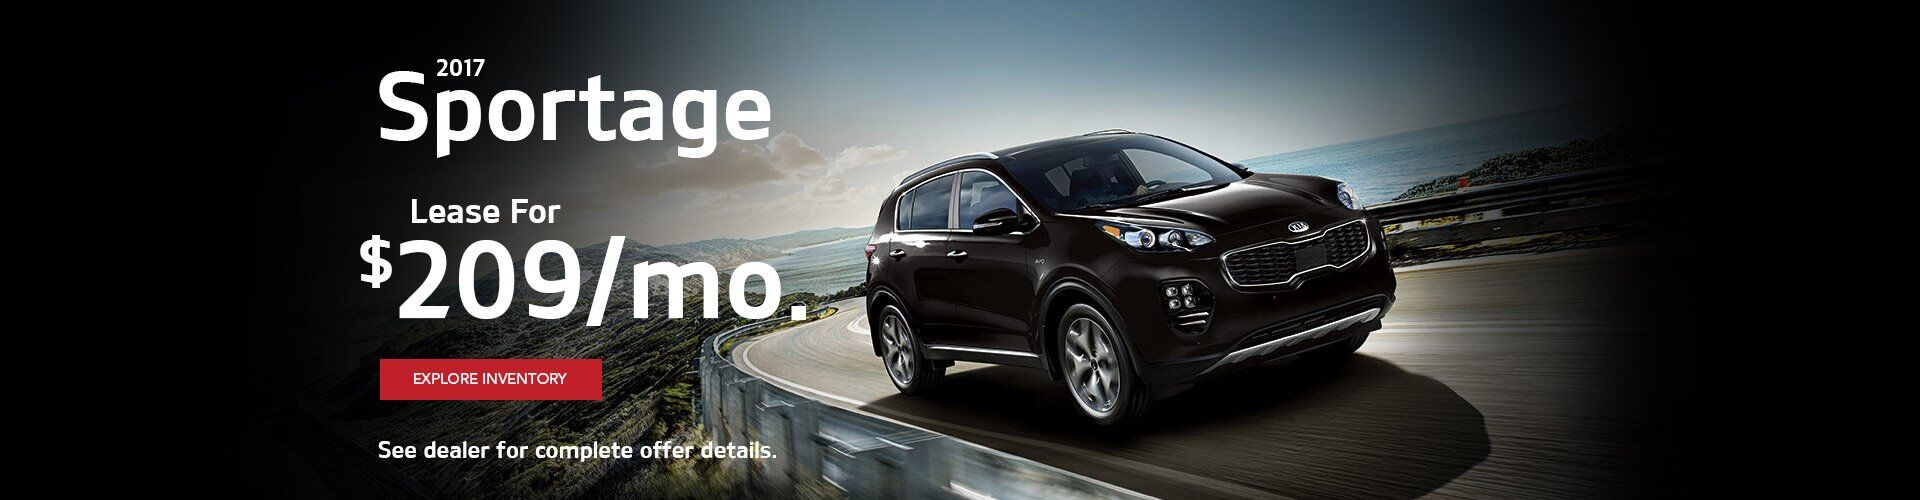 New Kia Sportage at Airport Kia